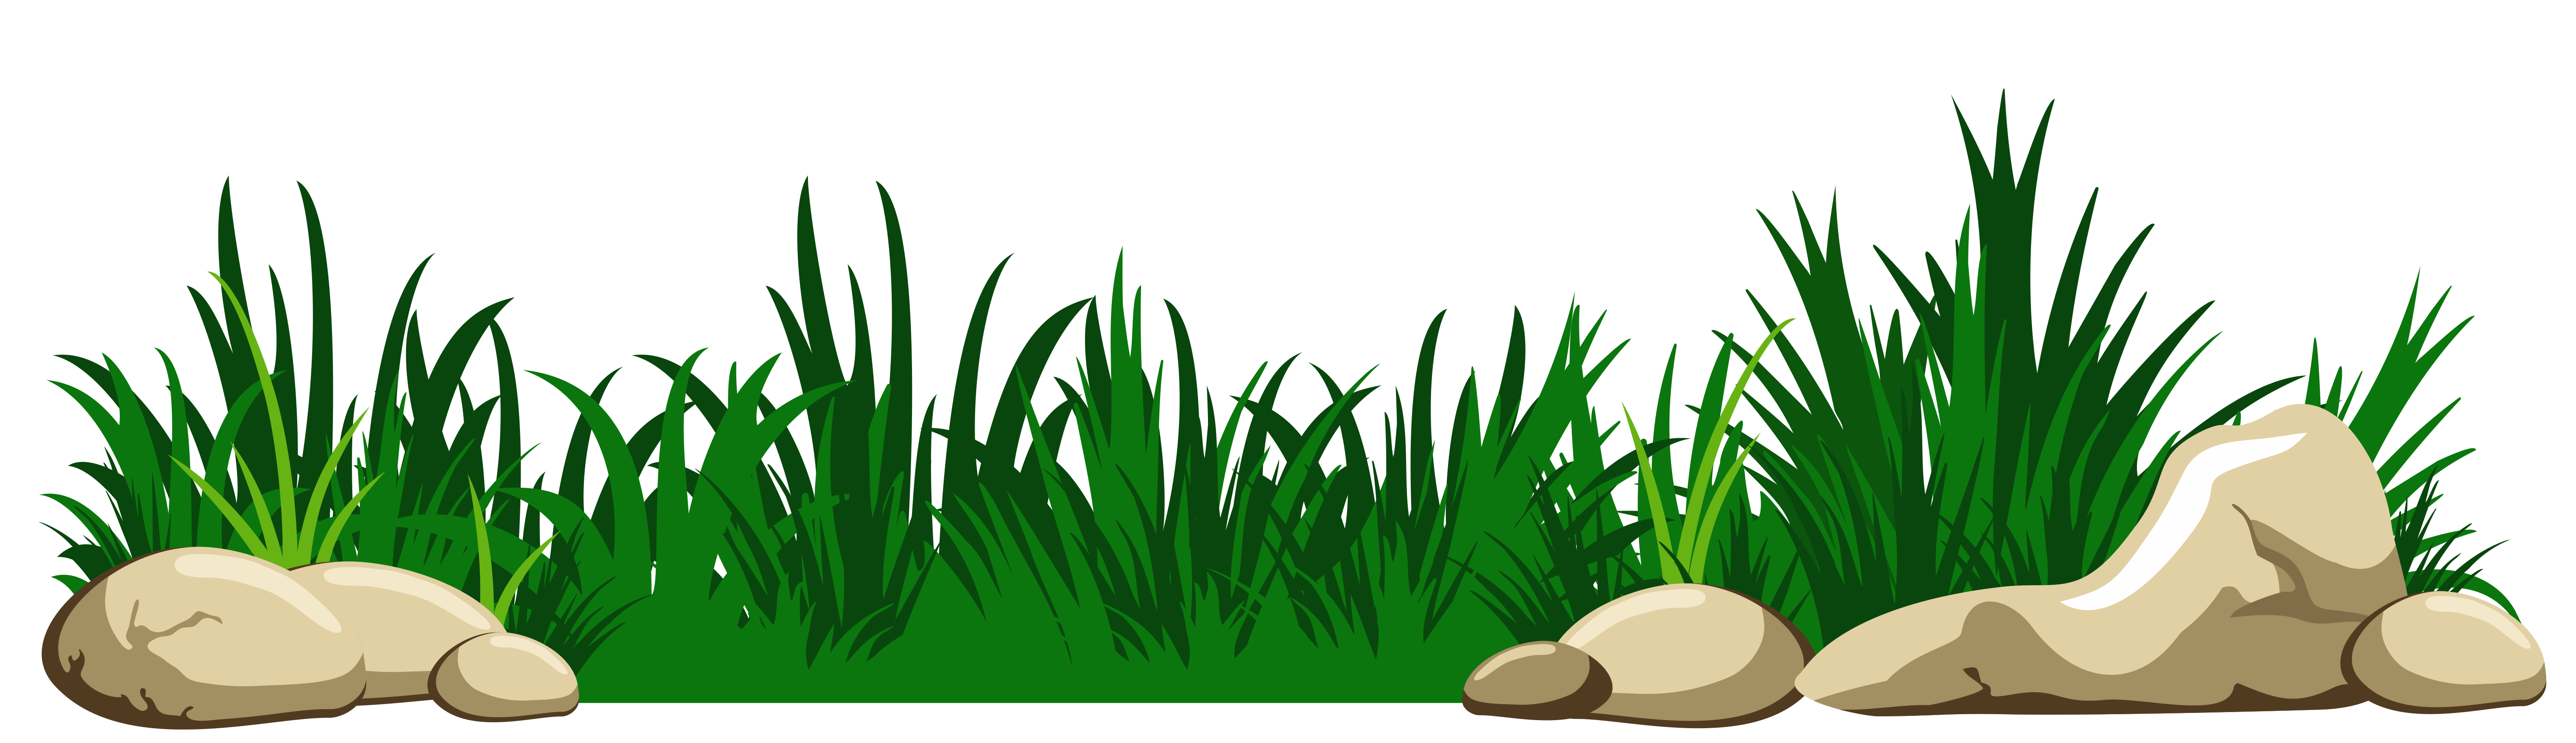 Hd grass clipart clipart freeuse library Download Grass With Transparent Rocks Free Clipart HD Clipart PNG ... clipart freeuse library